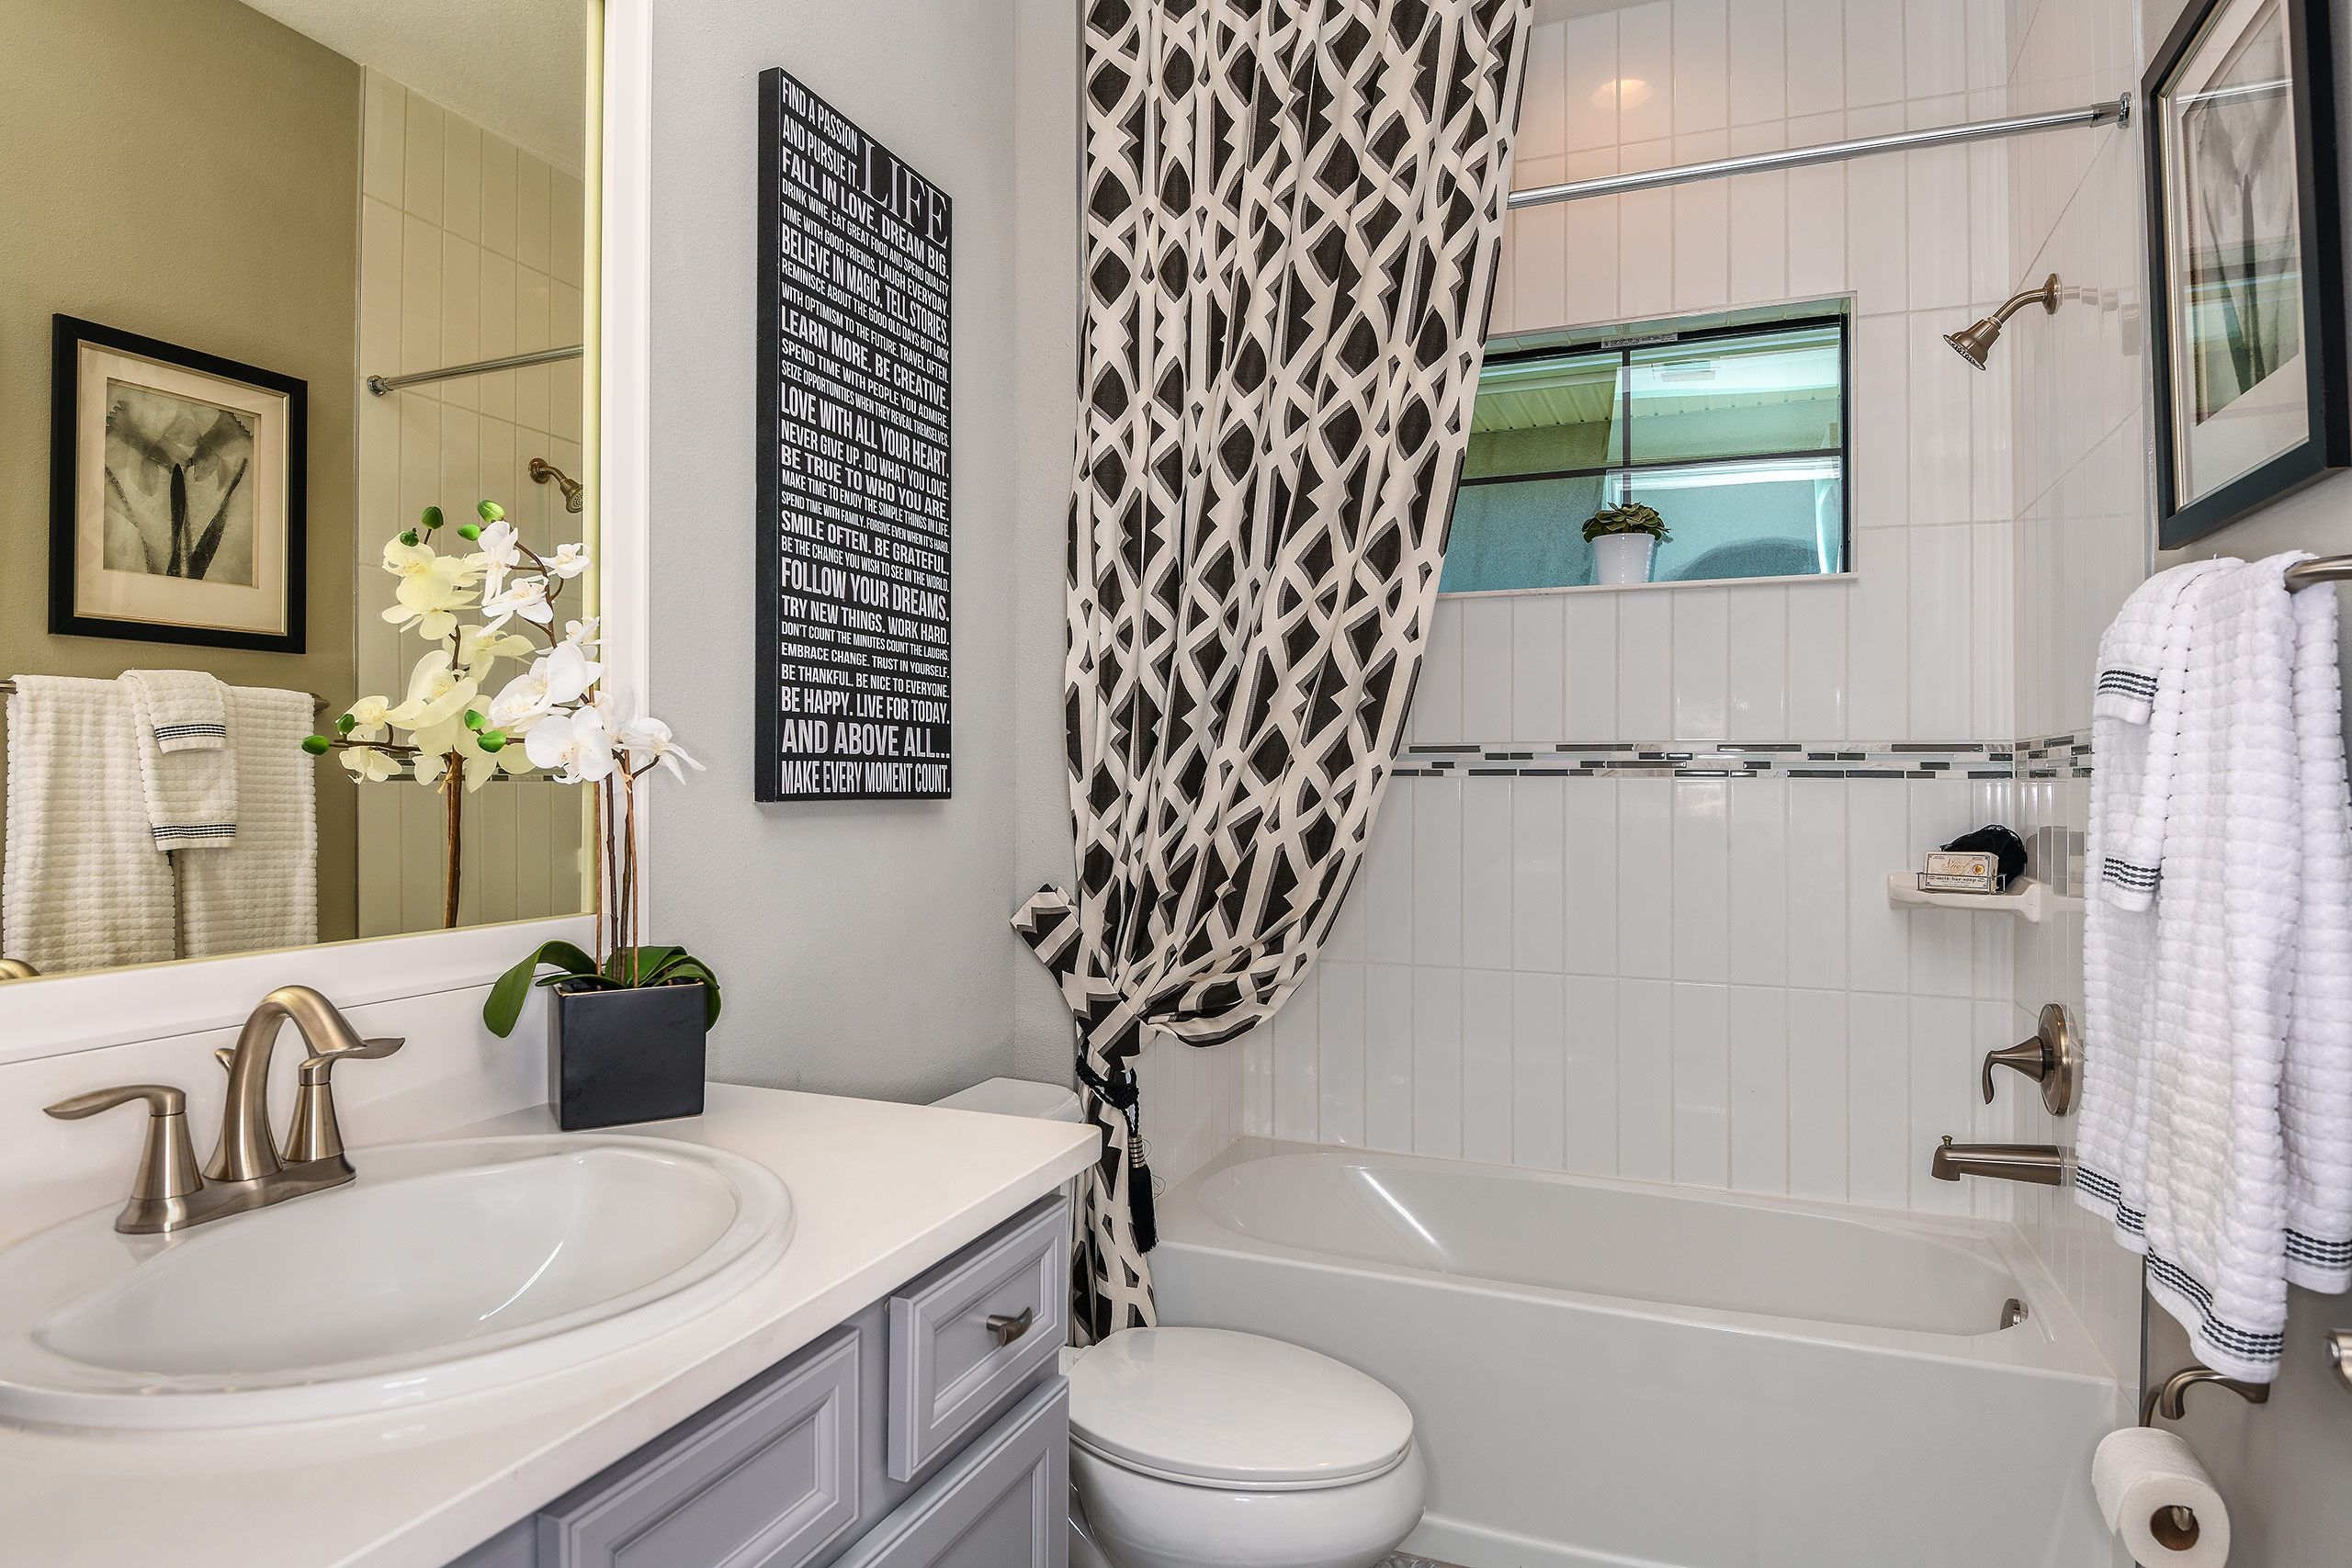 Bathroom featured in the Sandpiper By Homes by WestBay in Tampa-St. Petersburg, FL